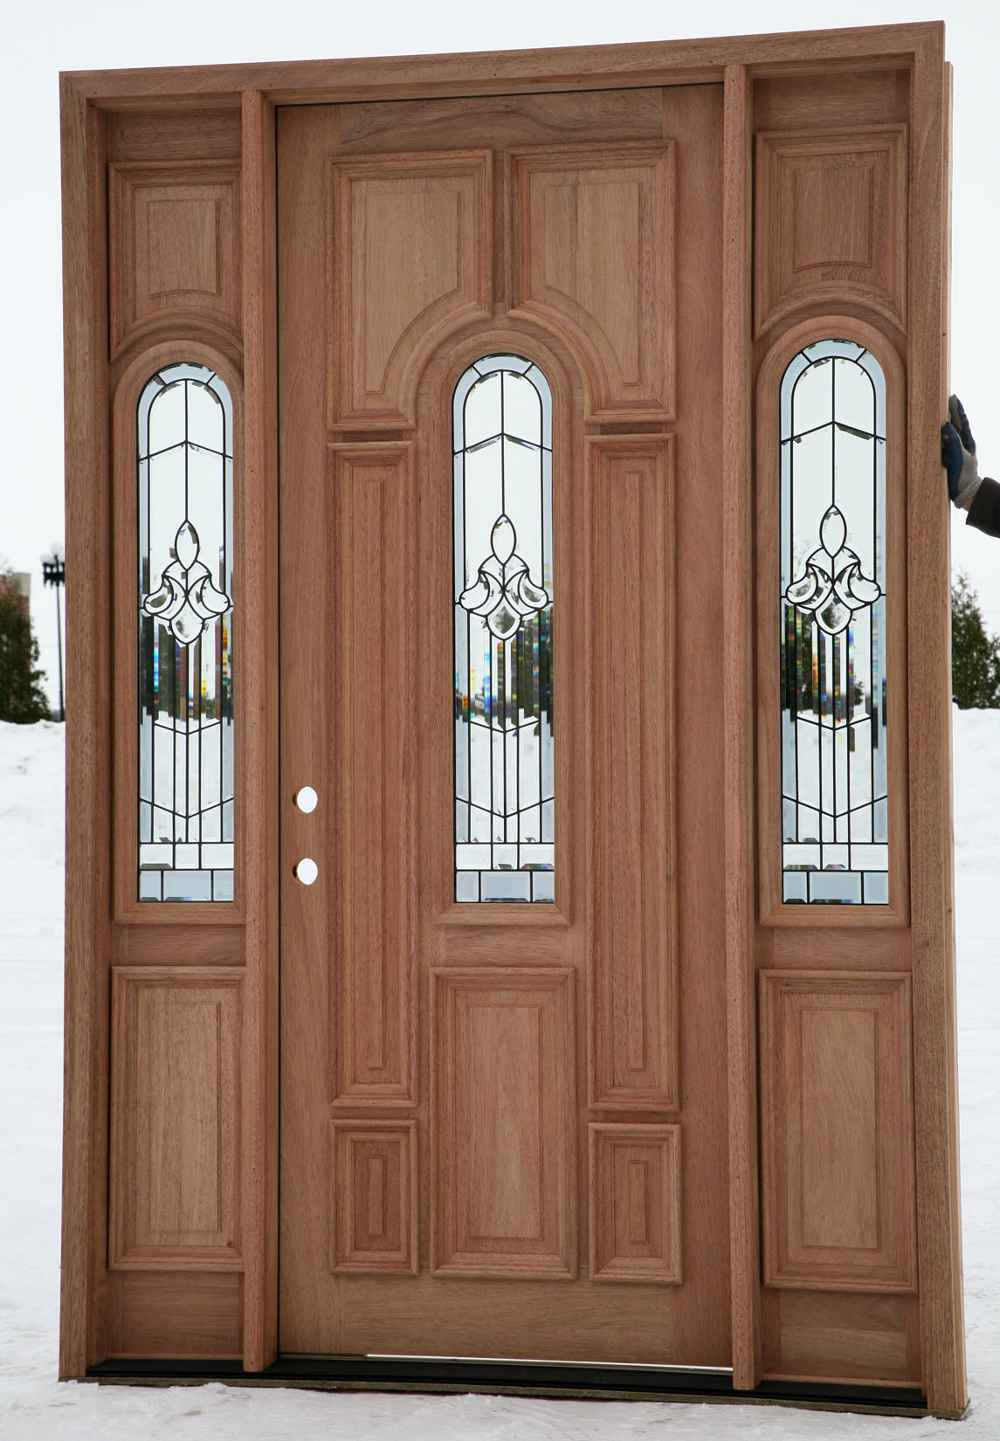 Cheap entry doors with sidelights ideas for Entry doors with sidelights